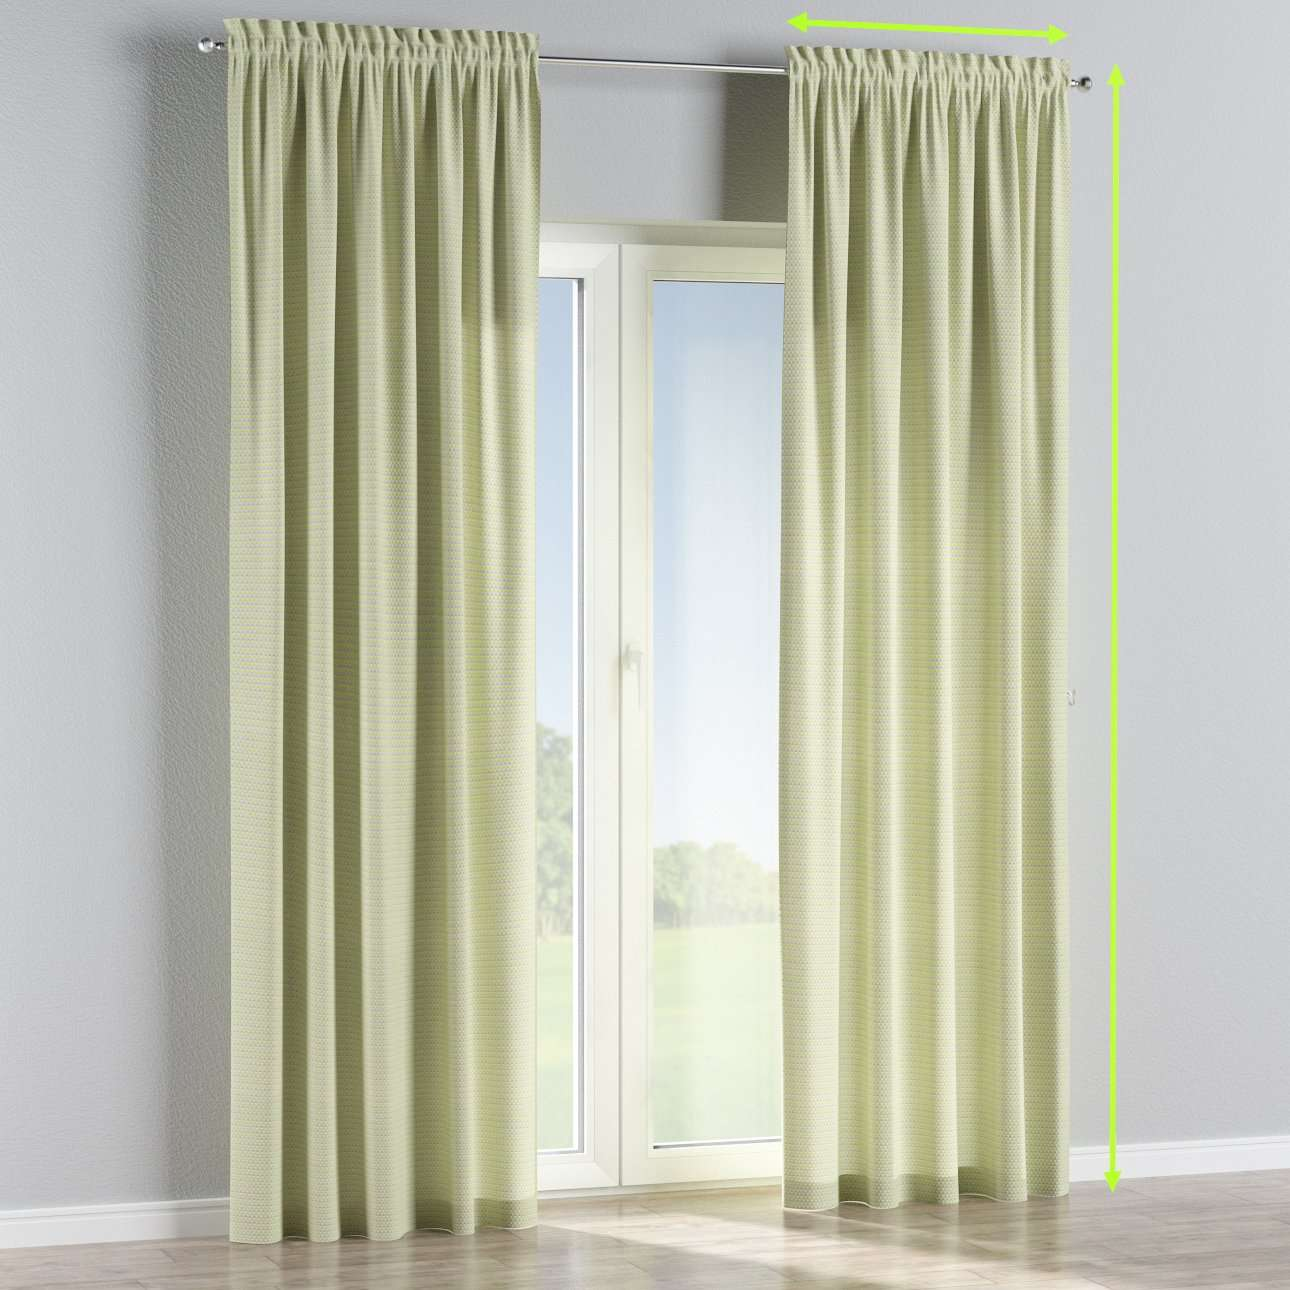 Slot and frill lined curtains in collection Rustica, fabric: 140-34